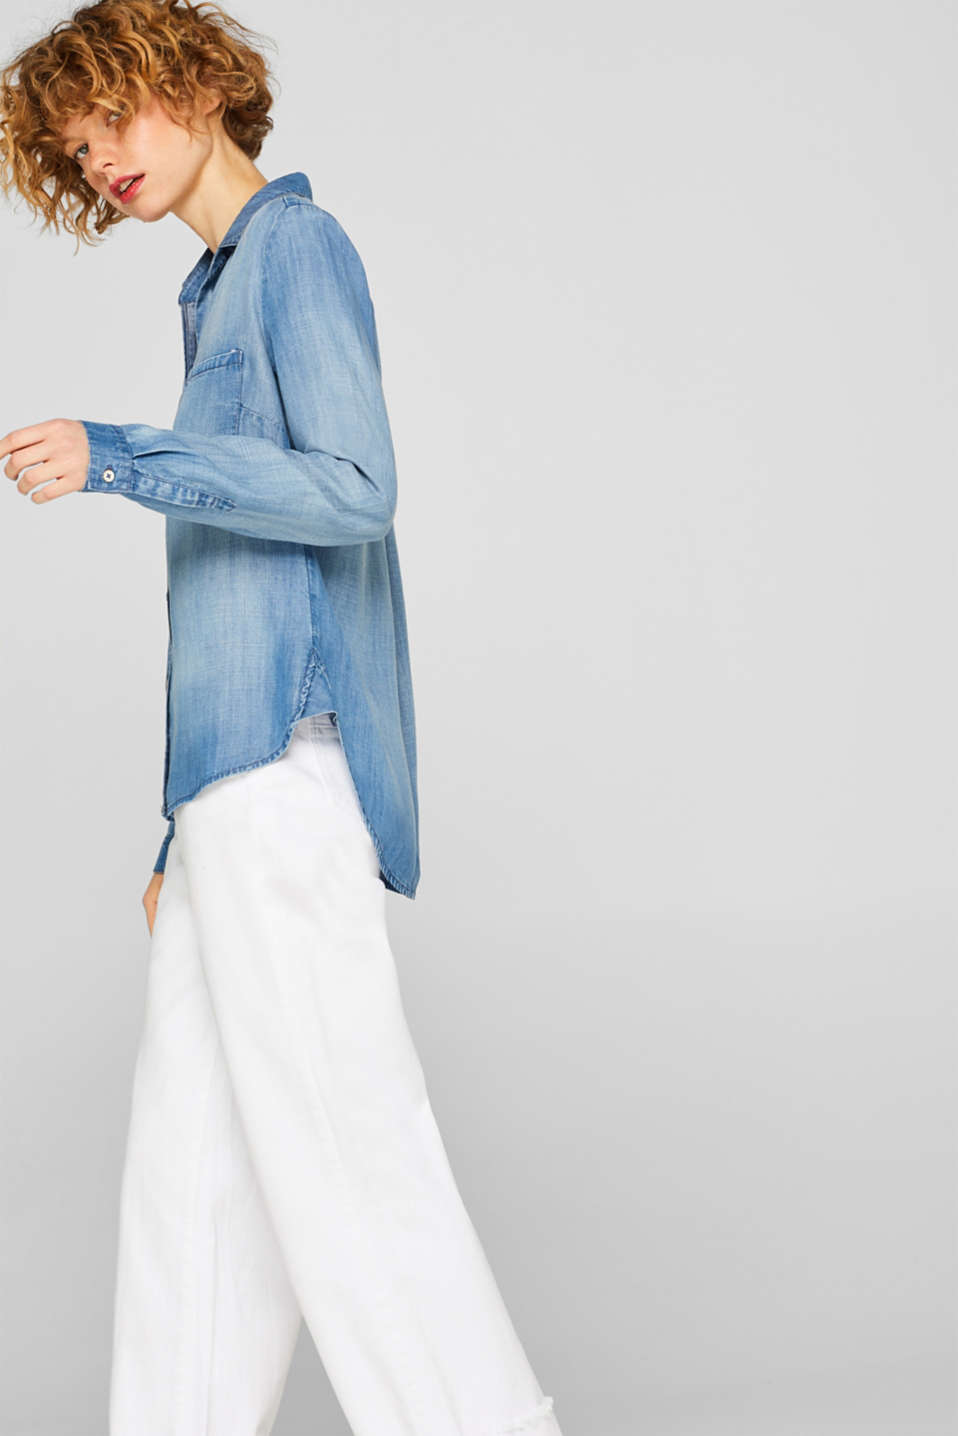 Esprit - Denim blouse made of lightweight lyocell